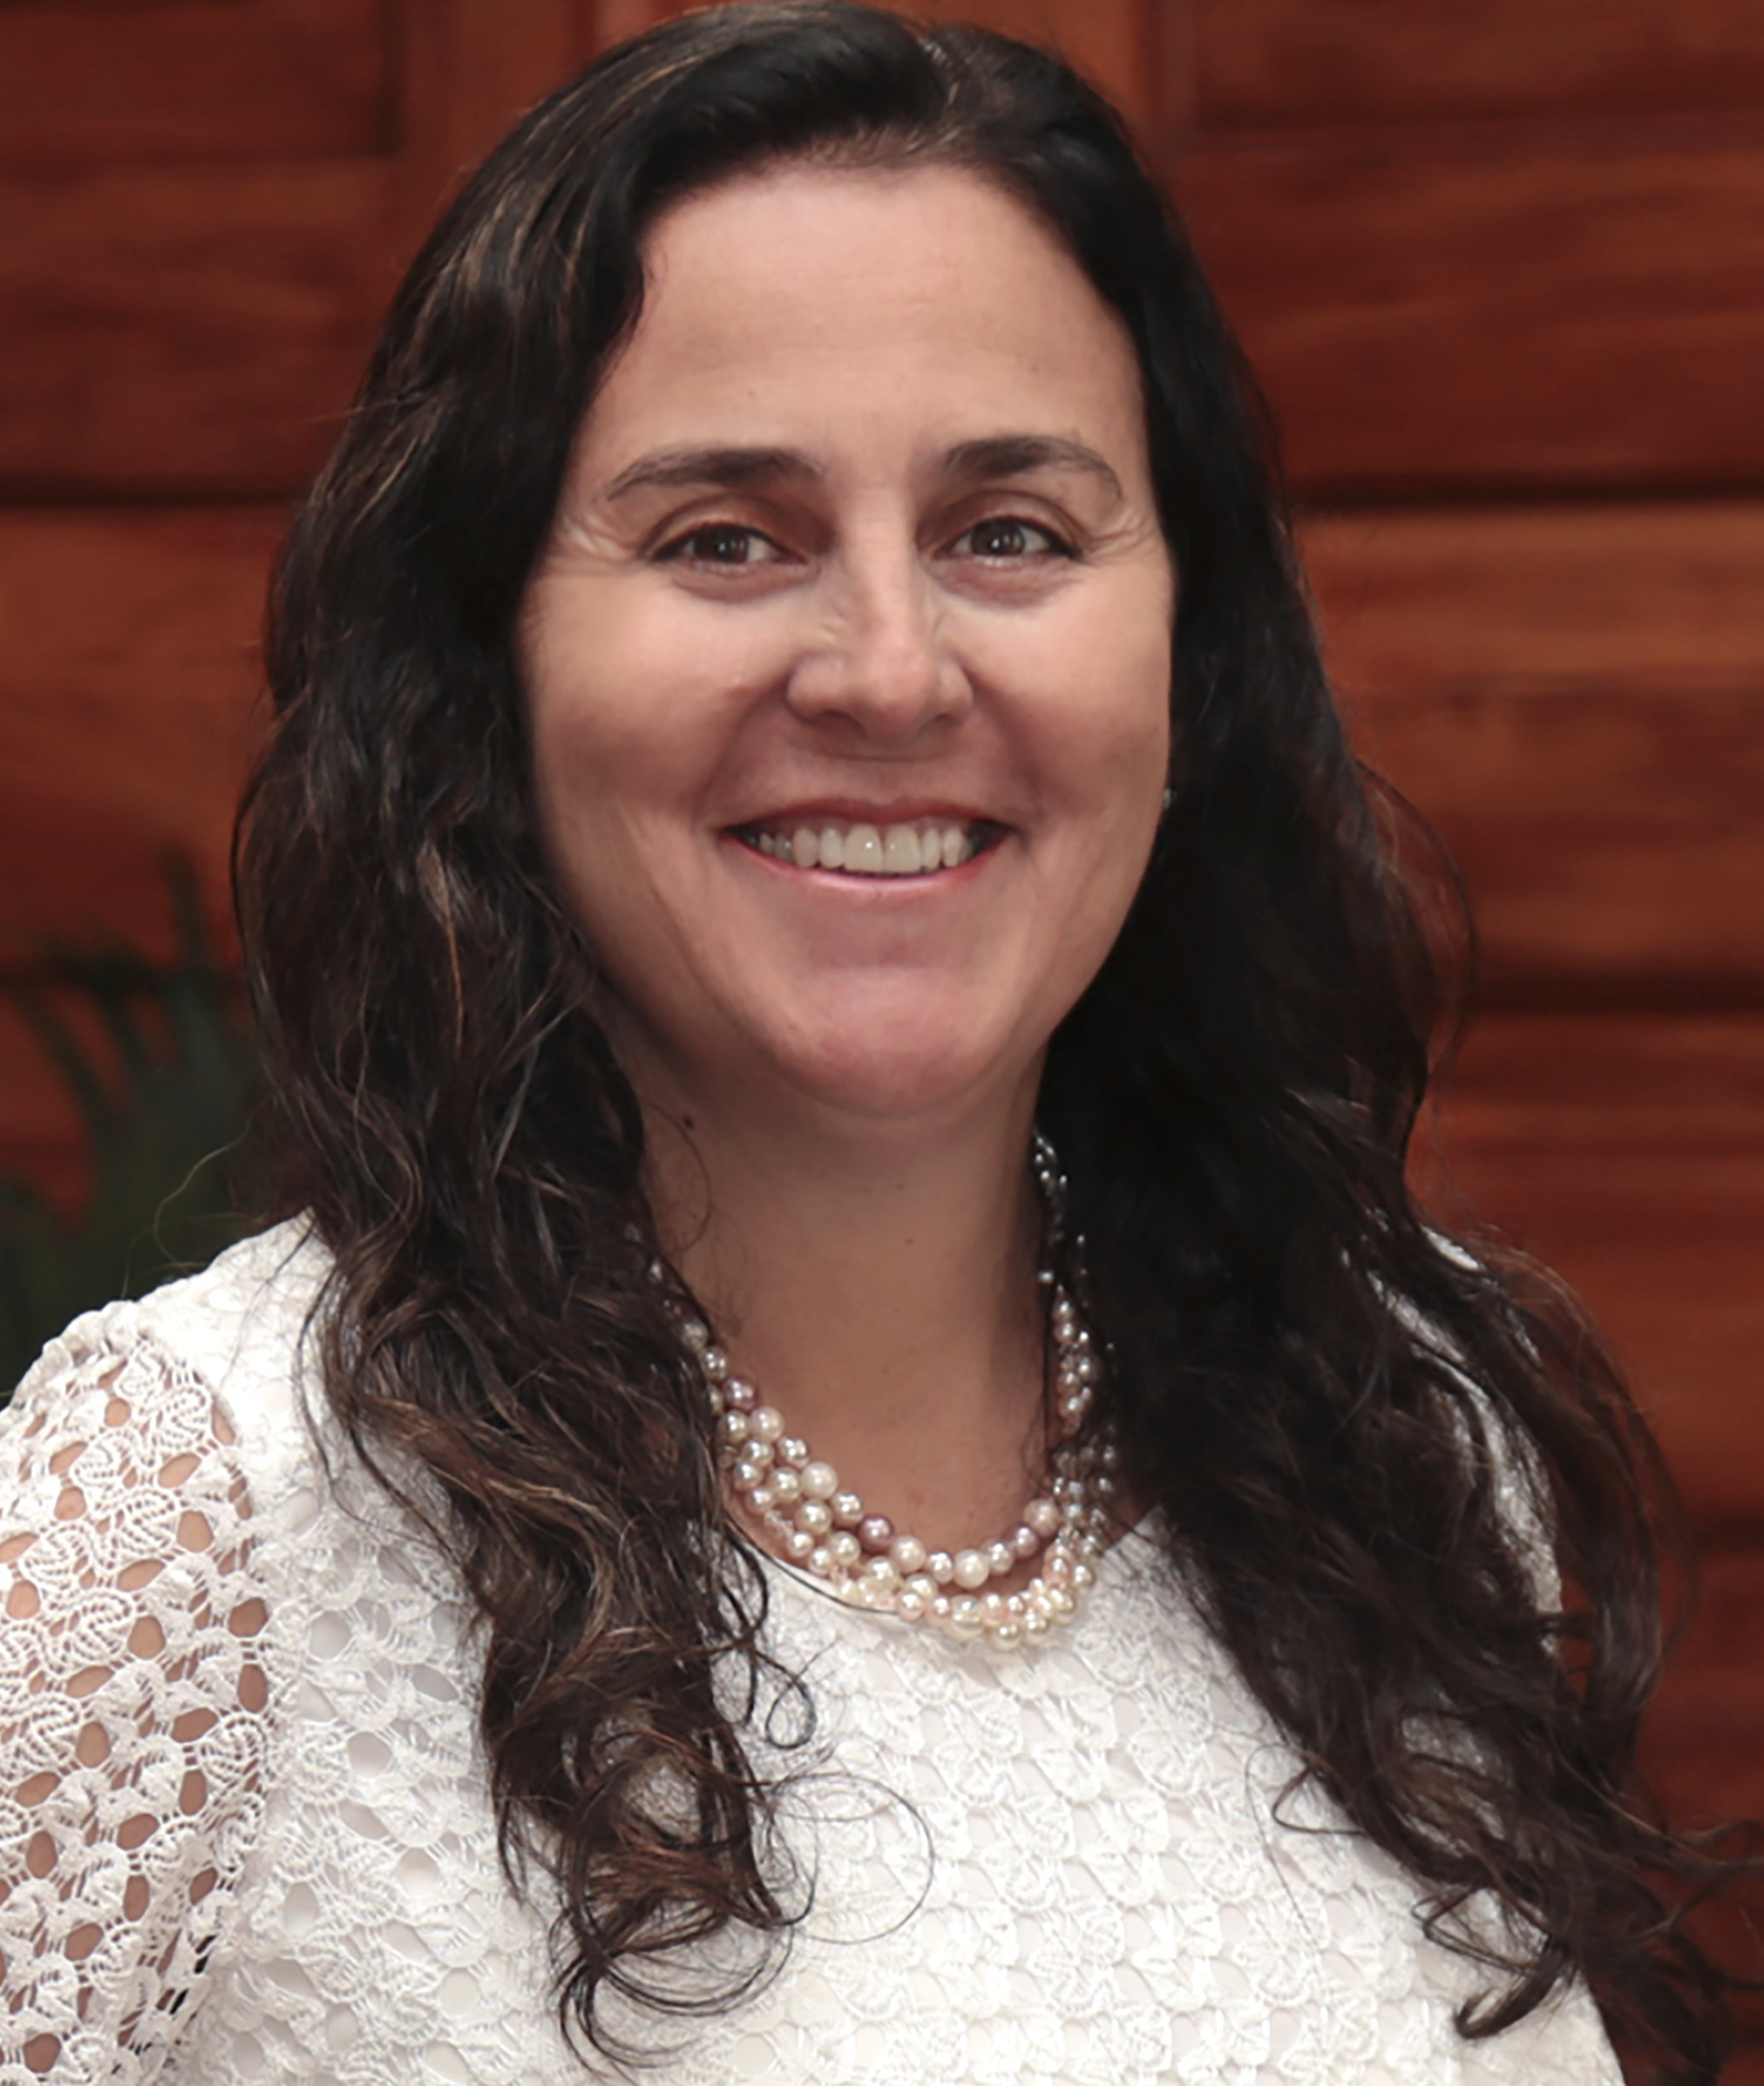 Patty García  is a Professor at the School of Public Health at Cayetano Heredia University (UPCH) in Lima. She is the former Minister of Health of Peru, Dean of the School of Public Health at UPCH, and former Chief of the Peruvian National Institute of Health (INS). She is recognized as a leader in global health, and has been a member of the PAHO Foundation Technical Advisory Group (FTAG), board member of the Consortium of Universities in Global Health and President of the Latin American Association Against STIs (ALACITS). She is an affiliate Professor of the Department of Global Health at the University of Washington and of the School of Public Health at Tulane University. She is actively involved in research and training on reproductive health, STIs/HIV, global health, HPV and medical informatics.